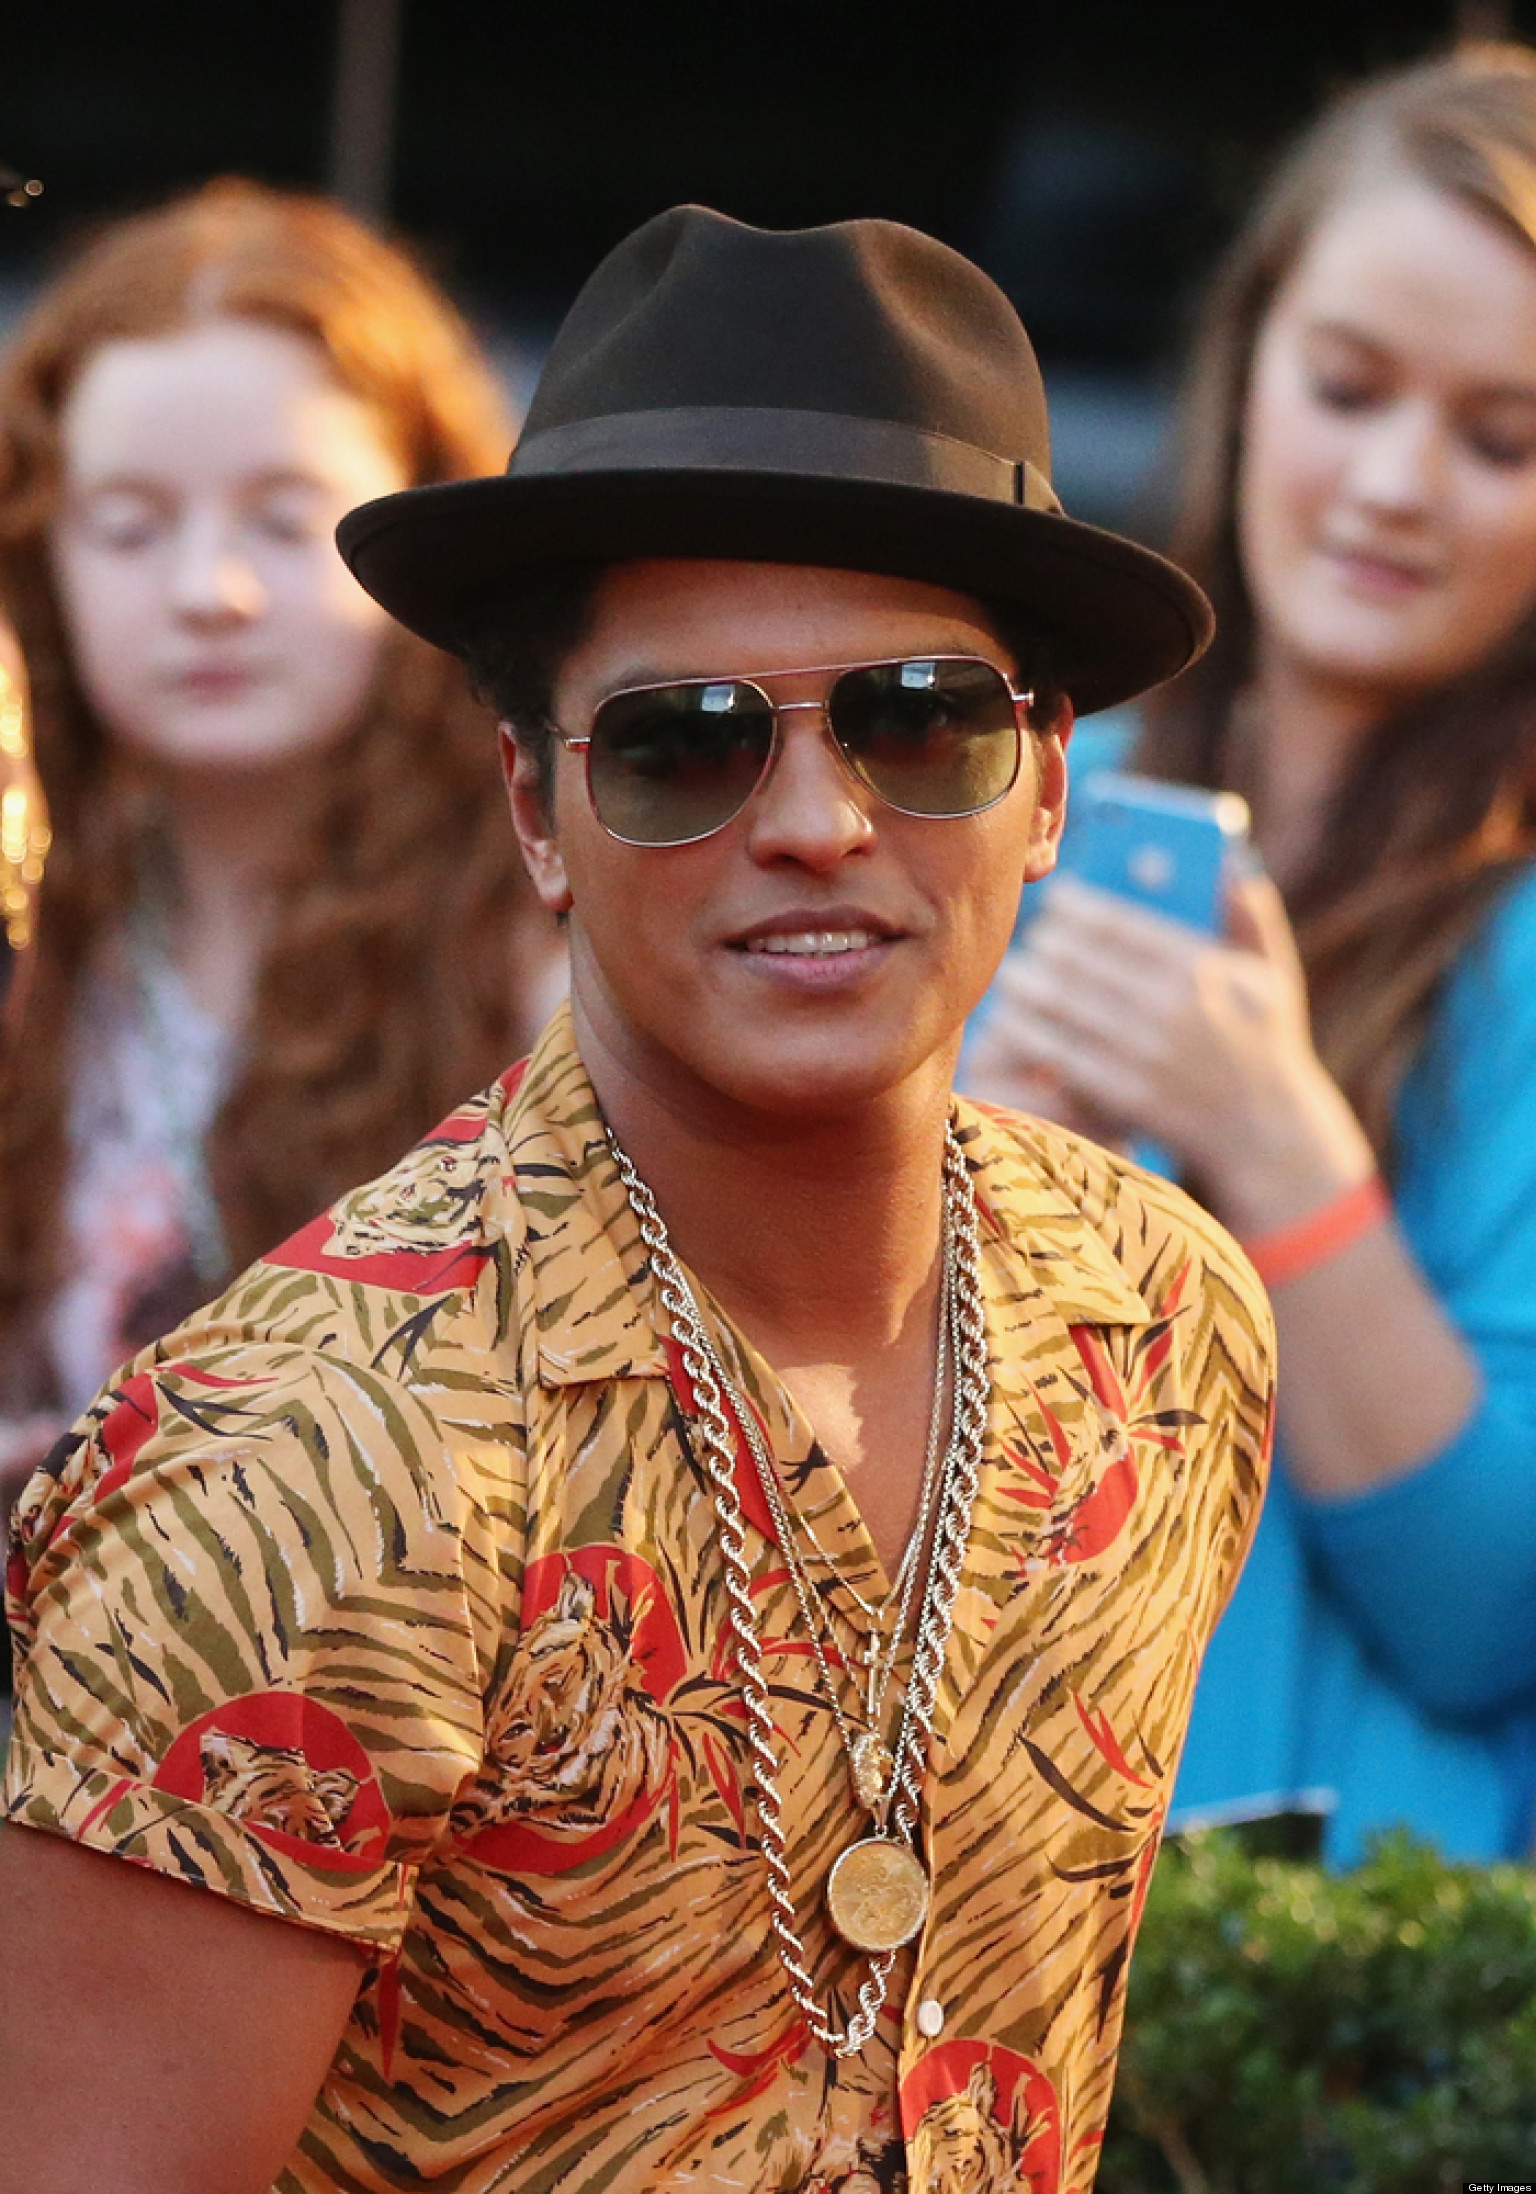 bruno single parents Co-wrote the hook for number 1 hit single,  to my family that's ridiculous  my dad nicknamed me bruno since i was 2 years old.